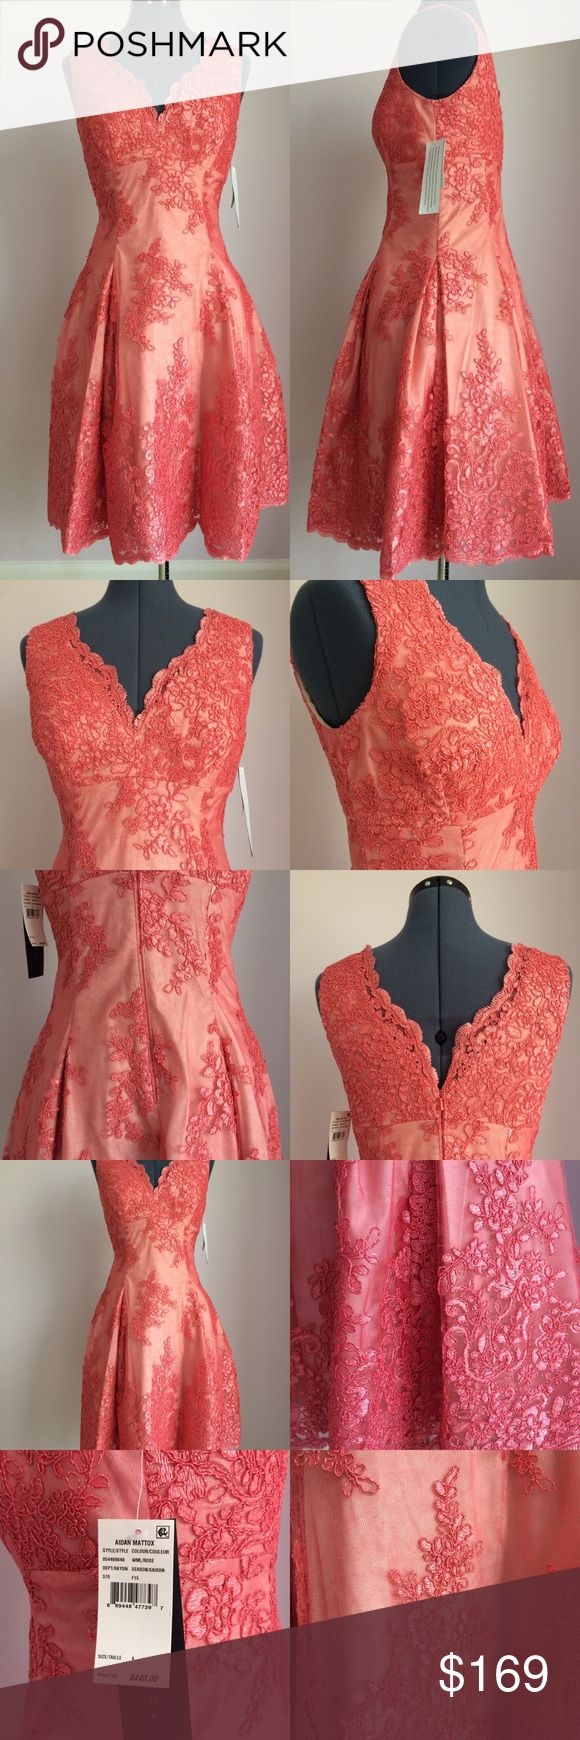 AIDAN MATTOX Tulle Embroidered Floral Dress Size 4 AIDAN MATTOX Tulle Embroidered Floral Dress Size 4. Color: Coral Aidan Mattox Dresses